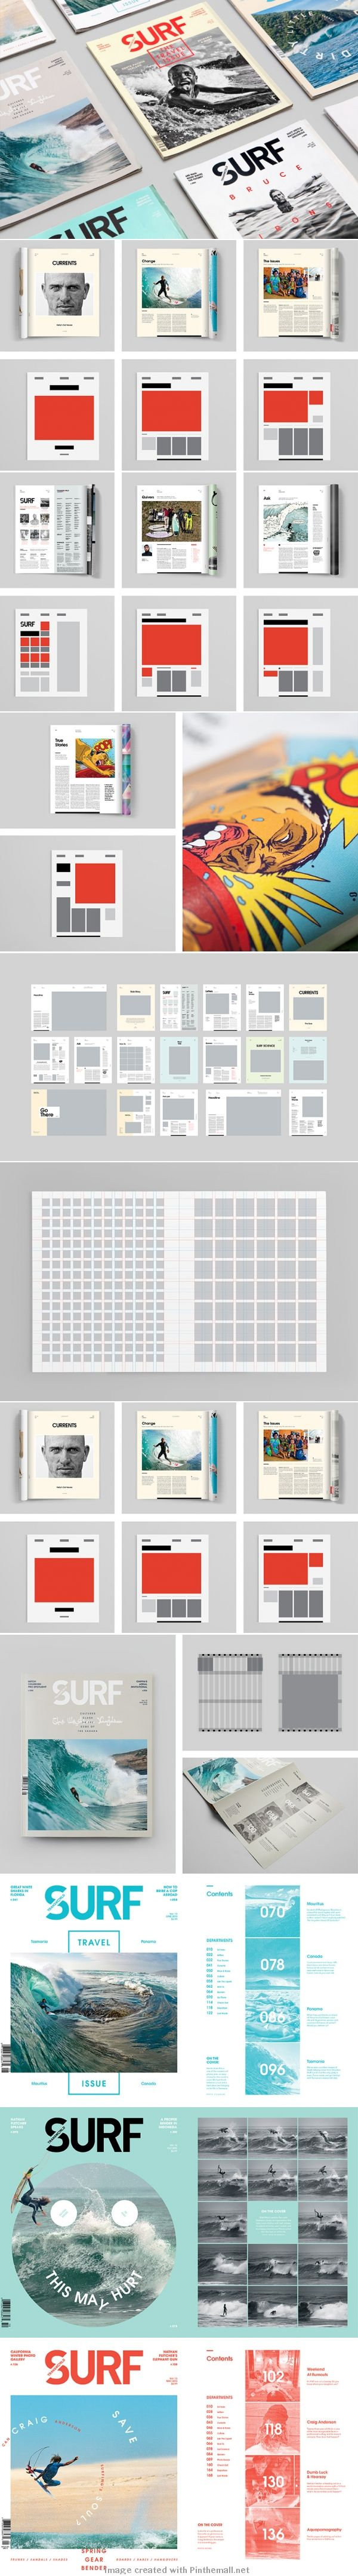 Pin by magazine designing on magazine design pinterest for Modern design magazine